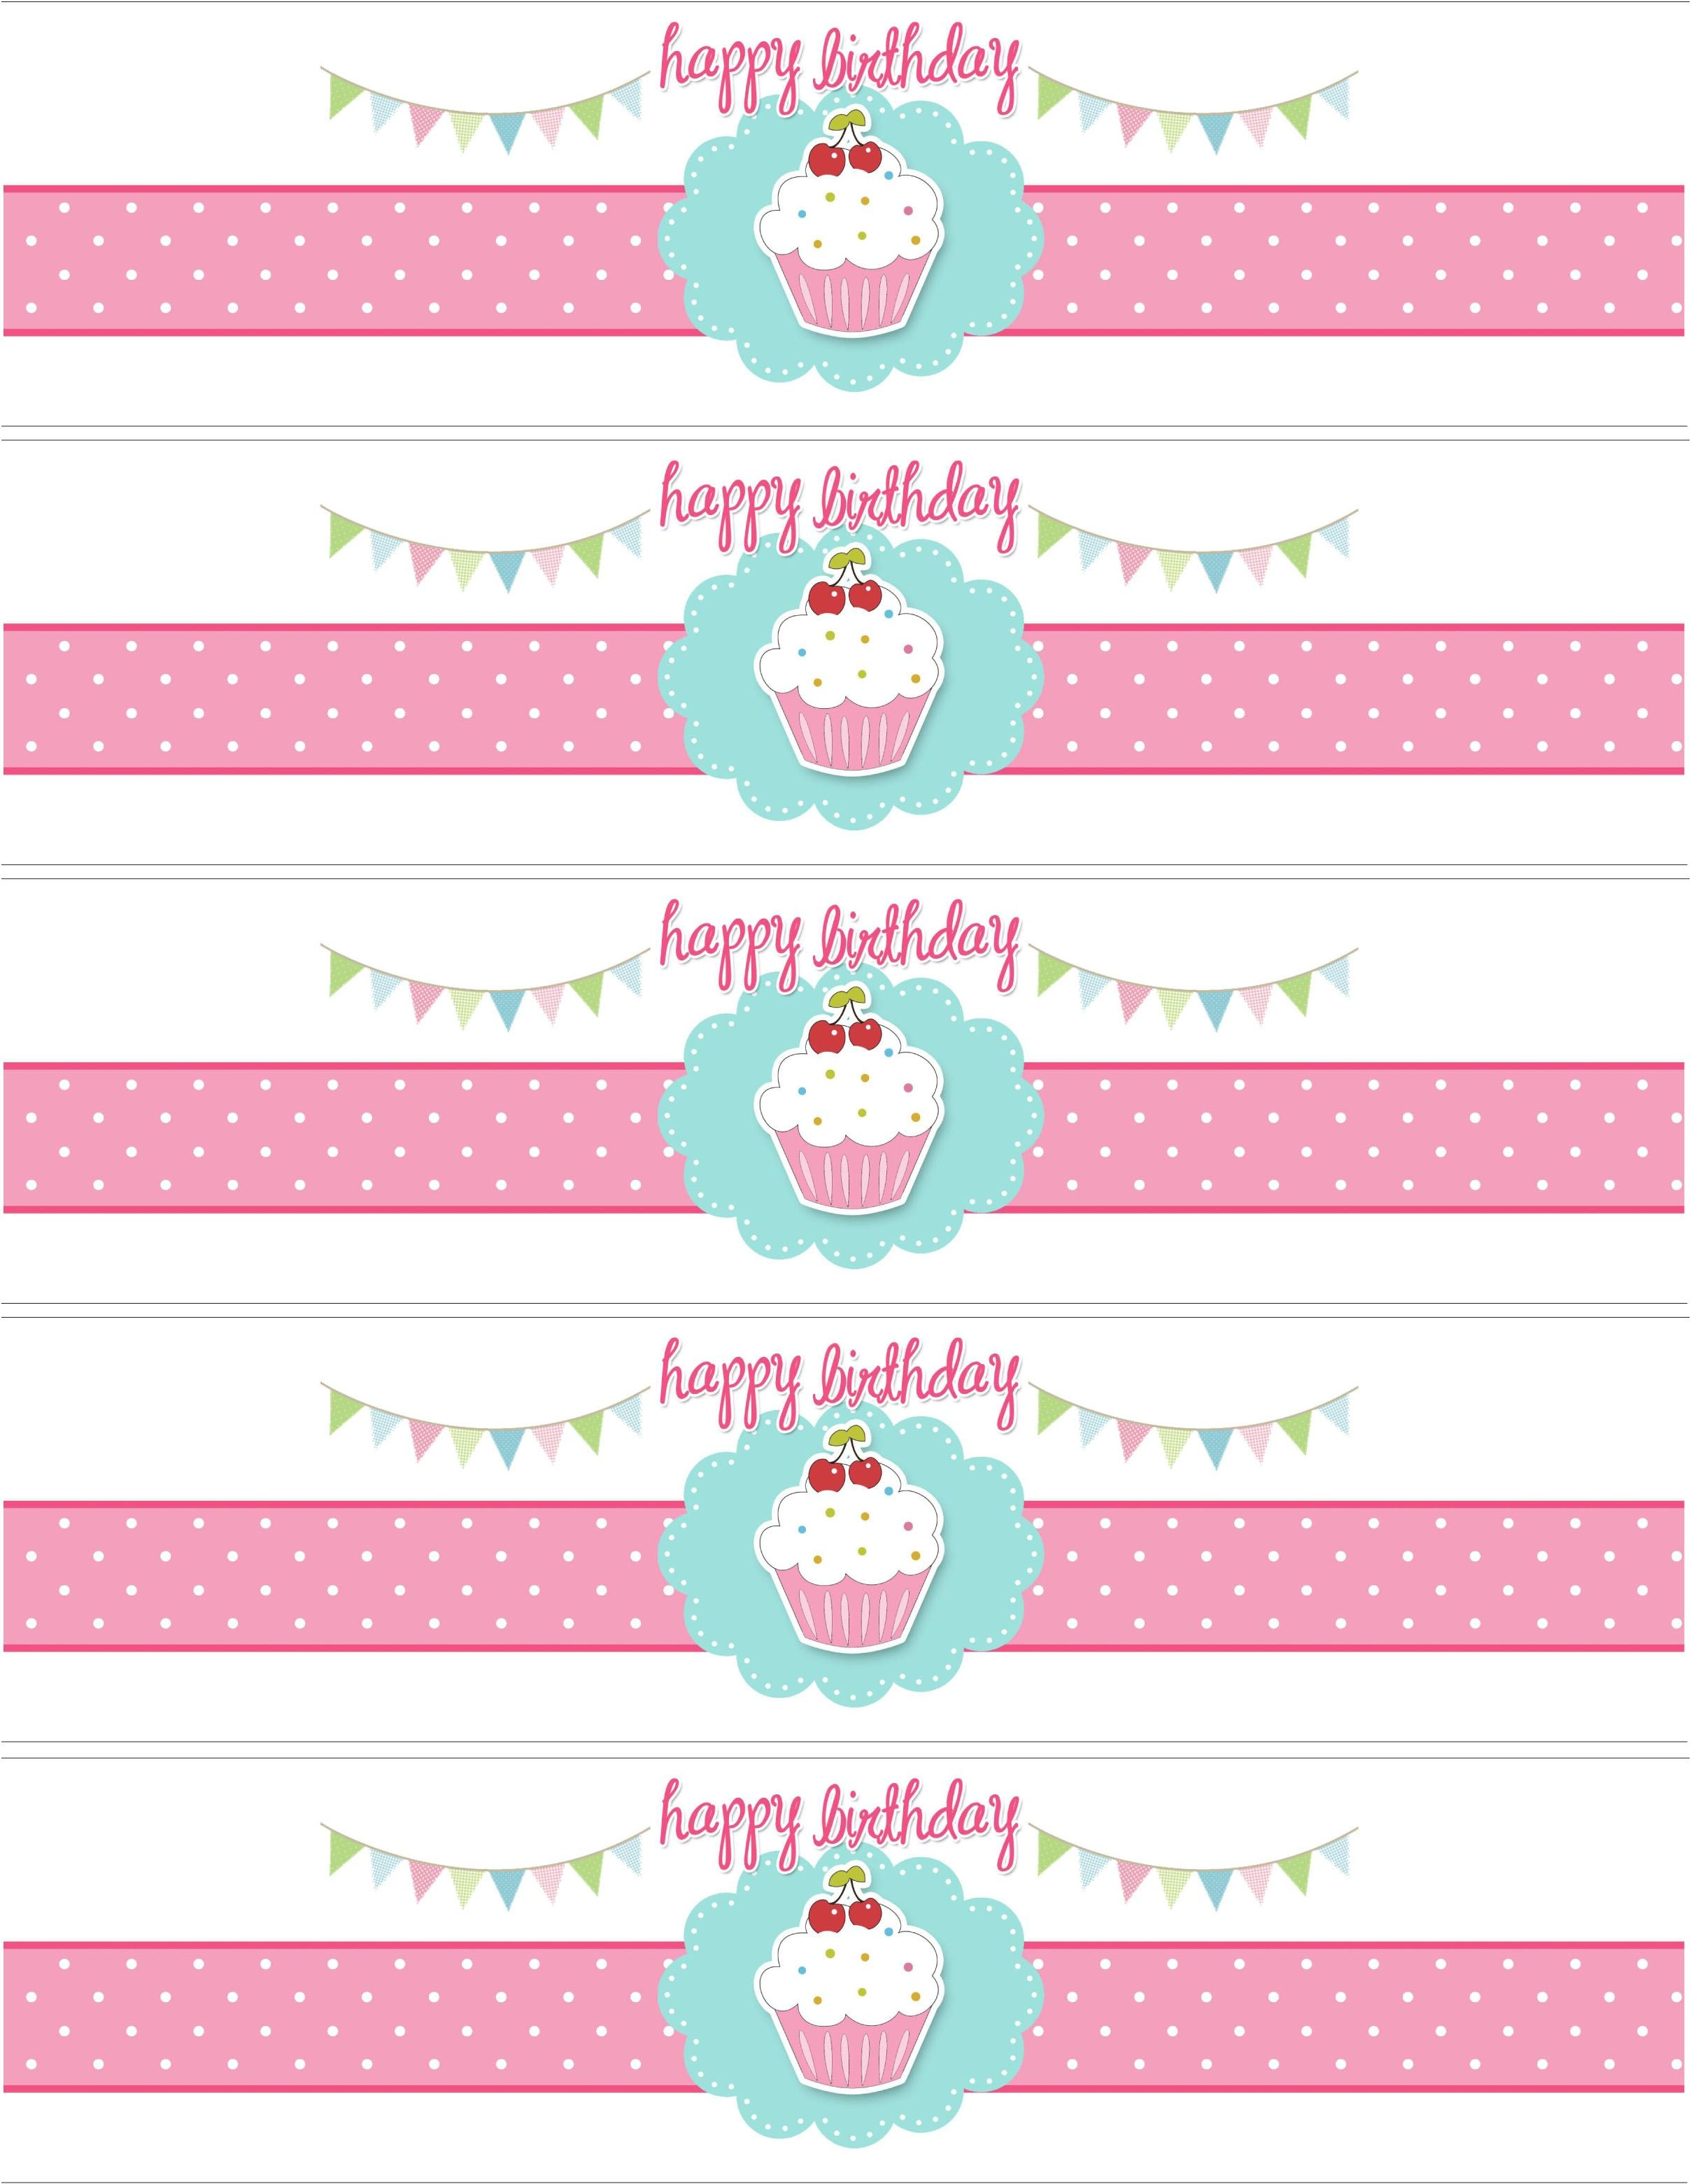 birthday tag template ; free-water-bottle-labels-gse-bookbinder-co-pertaining-to-free-water-bottle-label-template-birthday